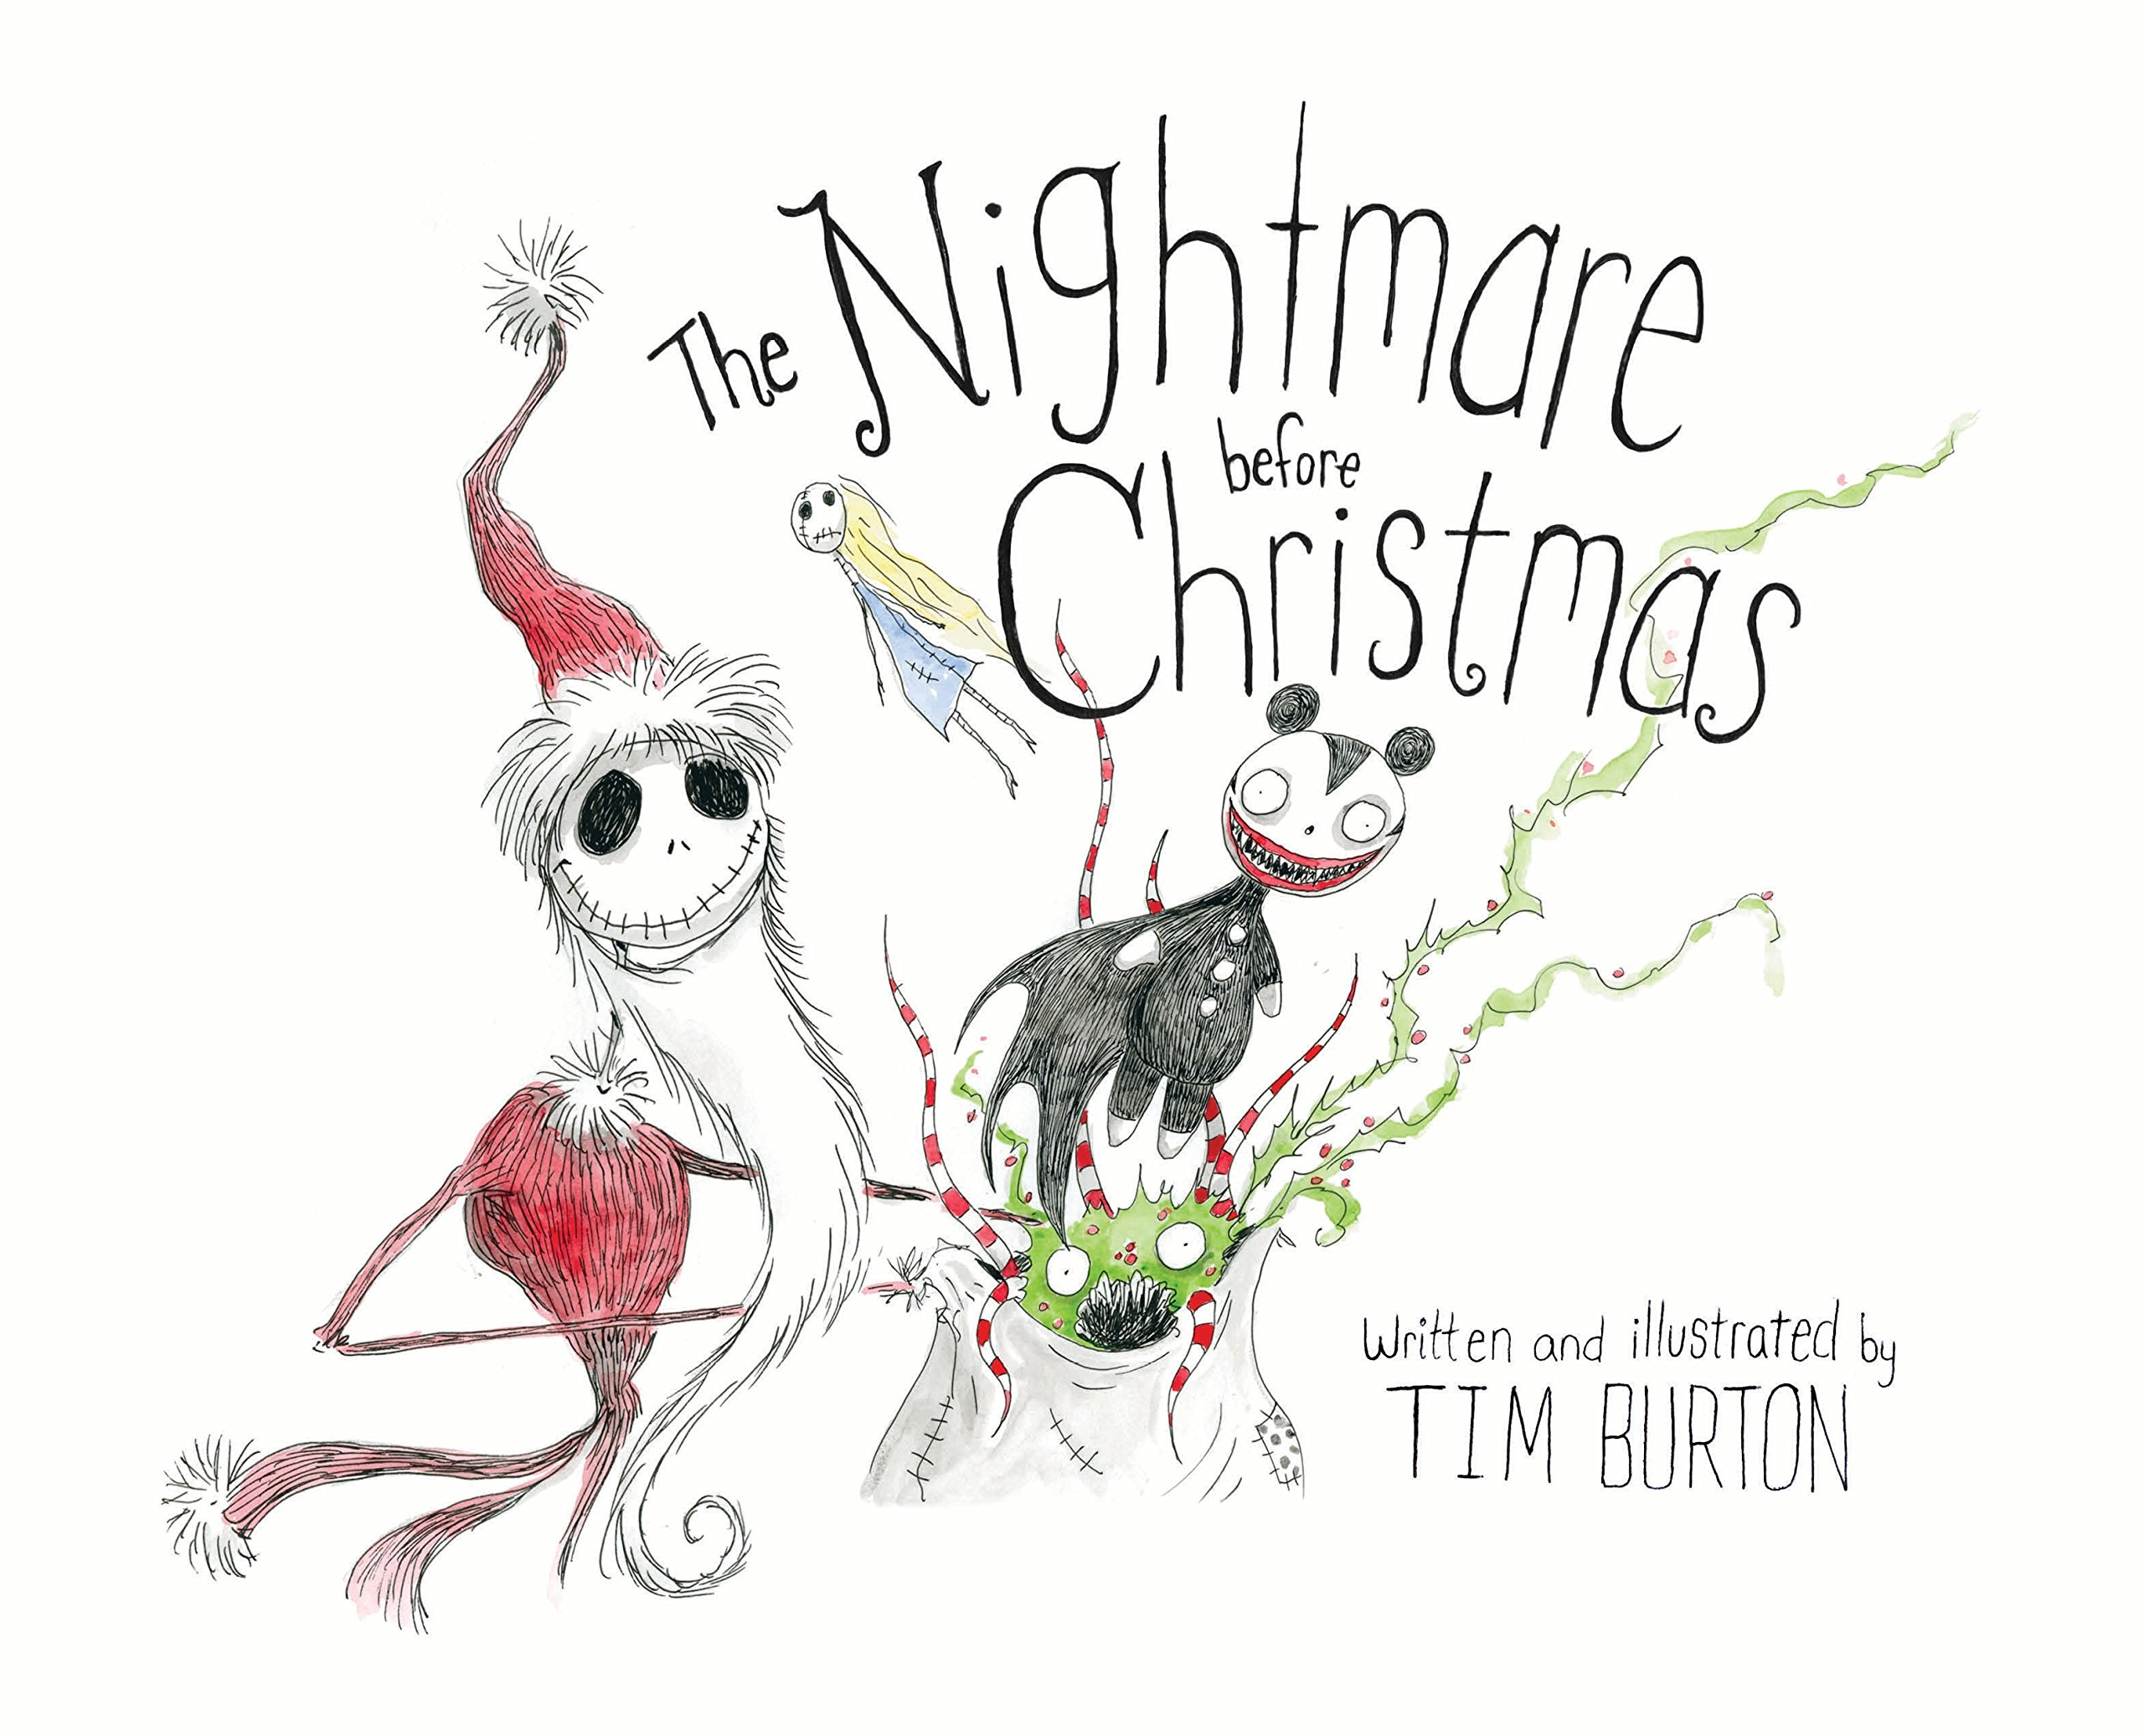 Nightmare Before Christmas: Amazon.co.uk: Music